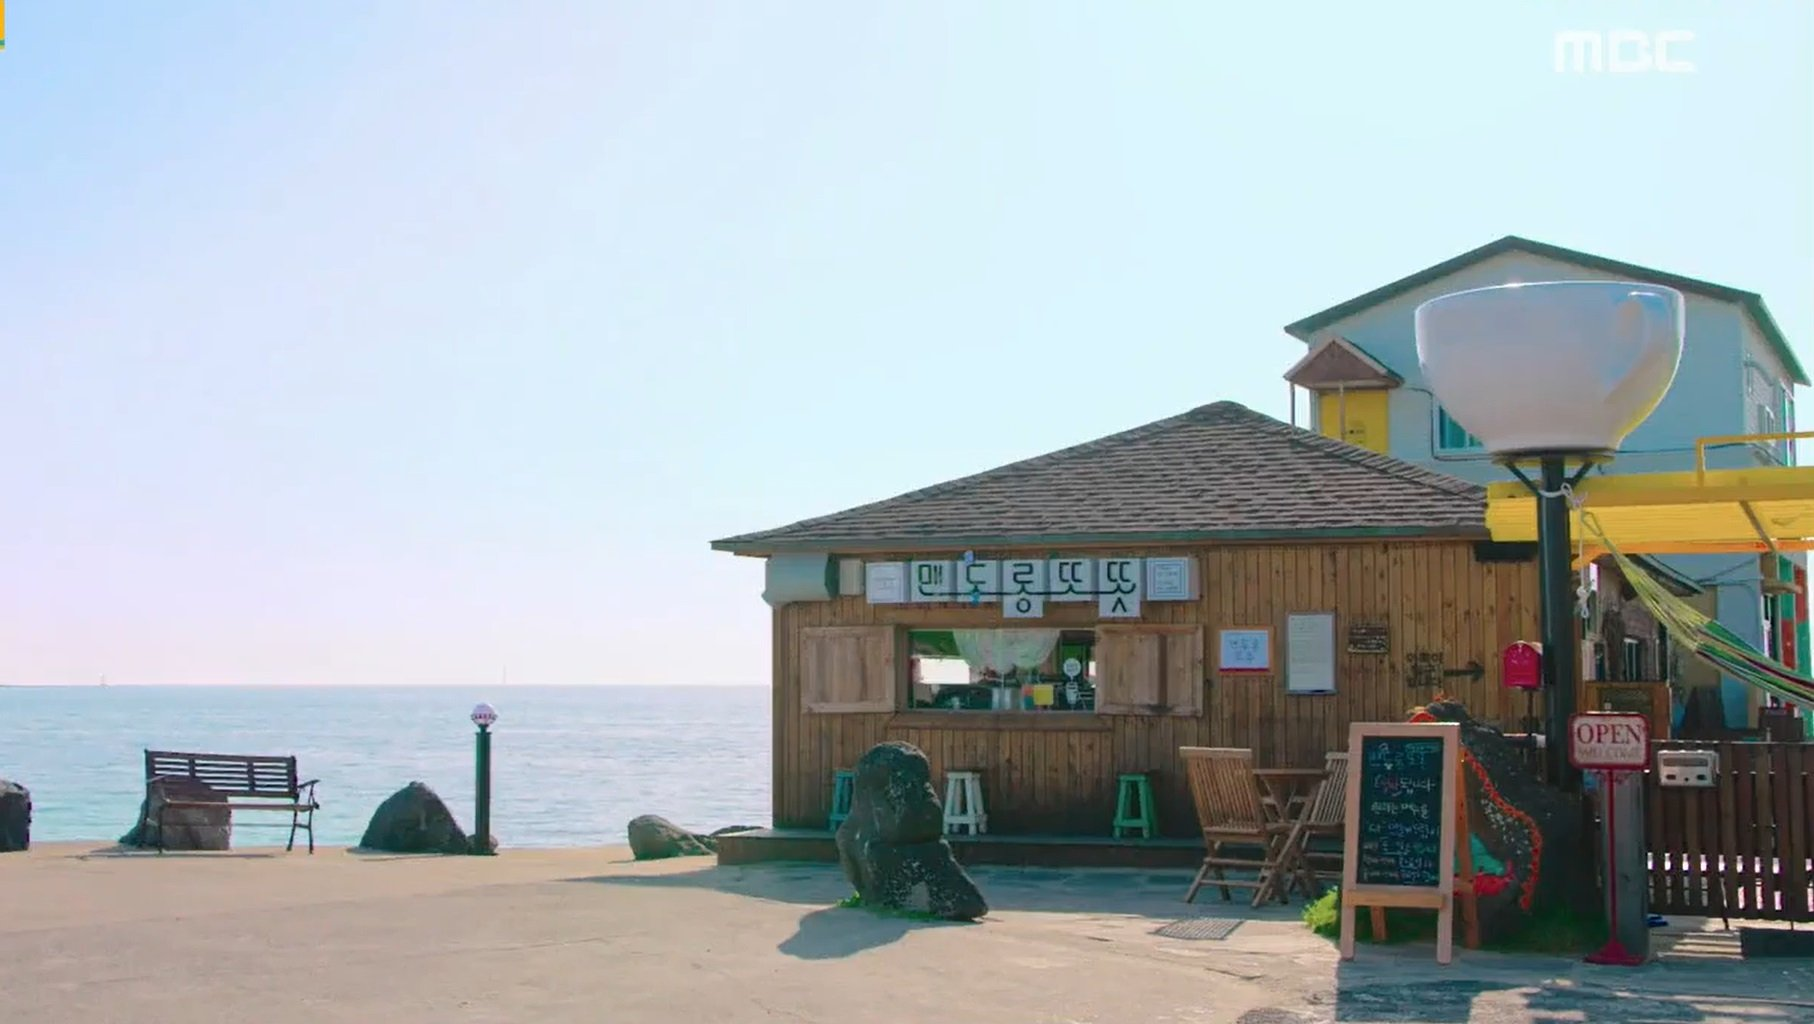 warm and cozy filming locations